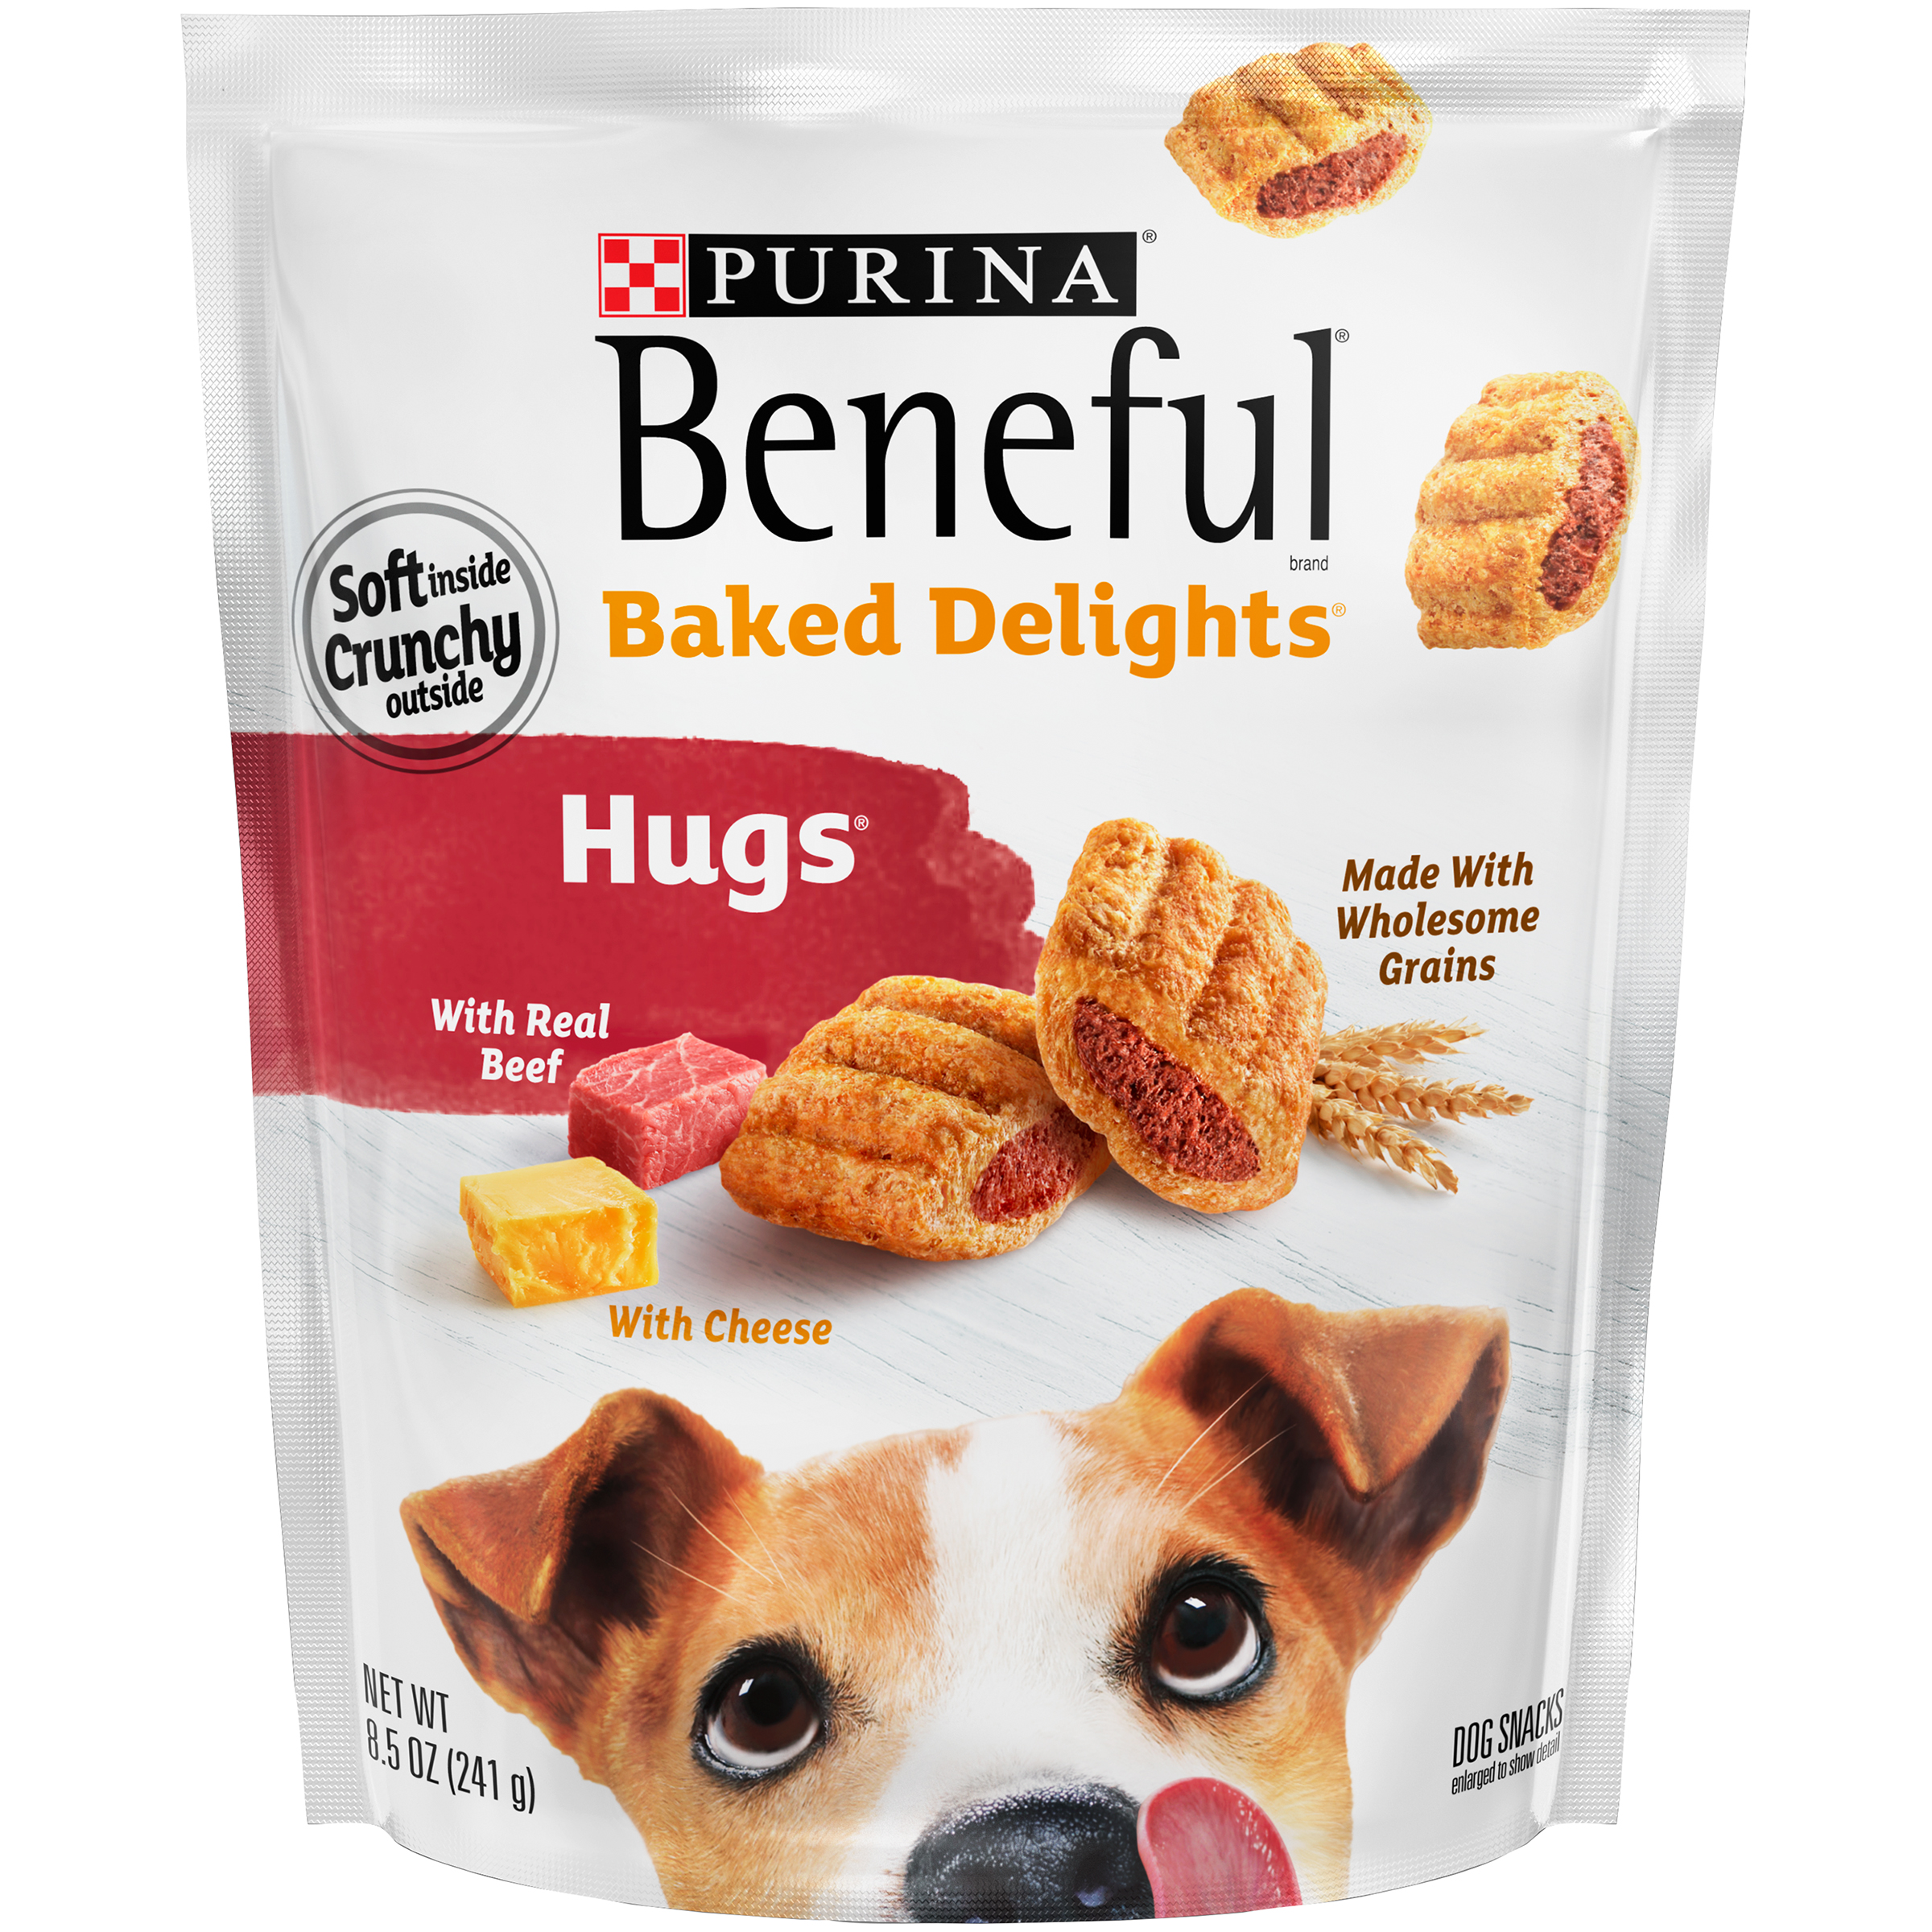 Purina Beneful Baked Delights Hugs Dog Snacks 8.5 oz. Pouch